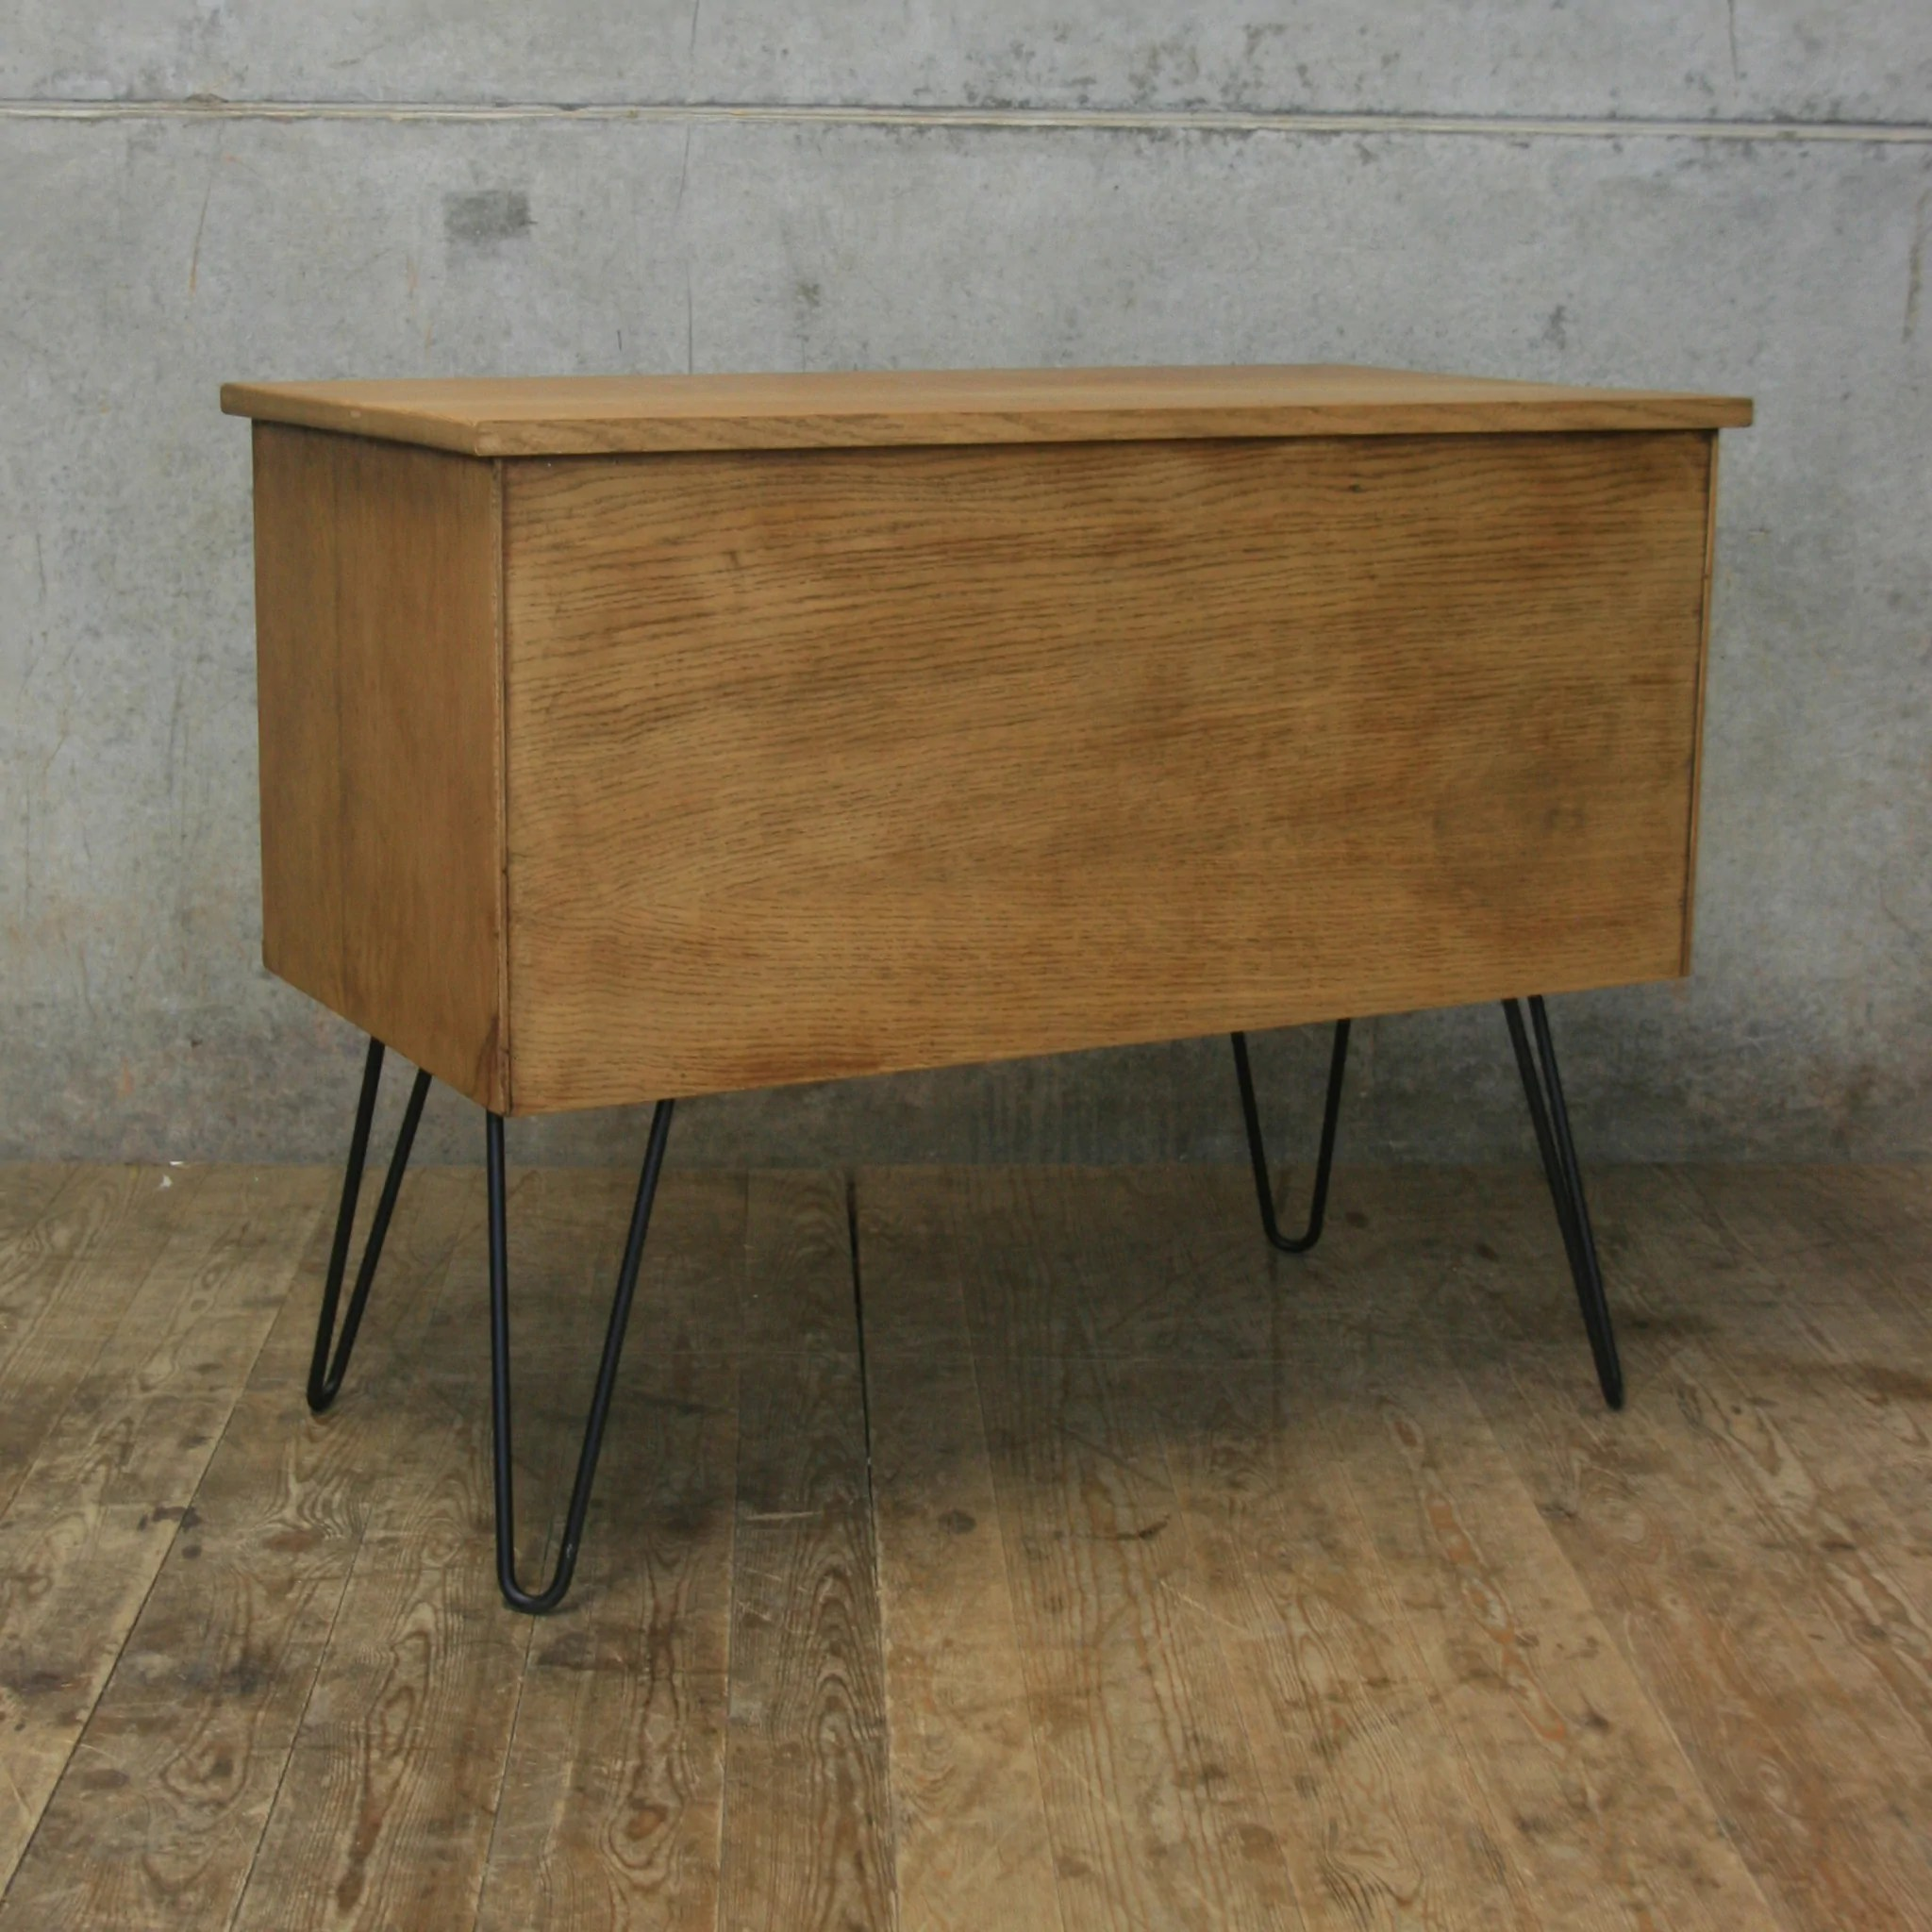 Vintage Sideboard Hairpin Legs Vintage Light Oak Index Drawers Cabinet Drinks Bar 2 Mustard